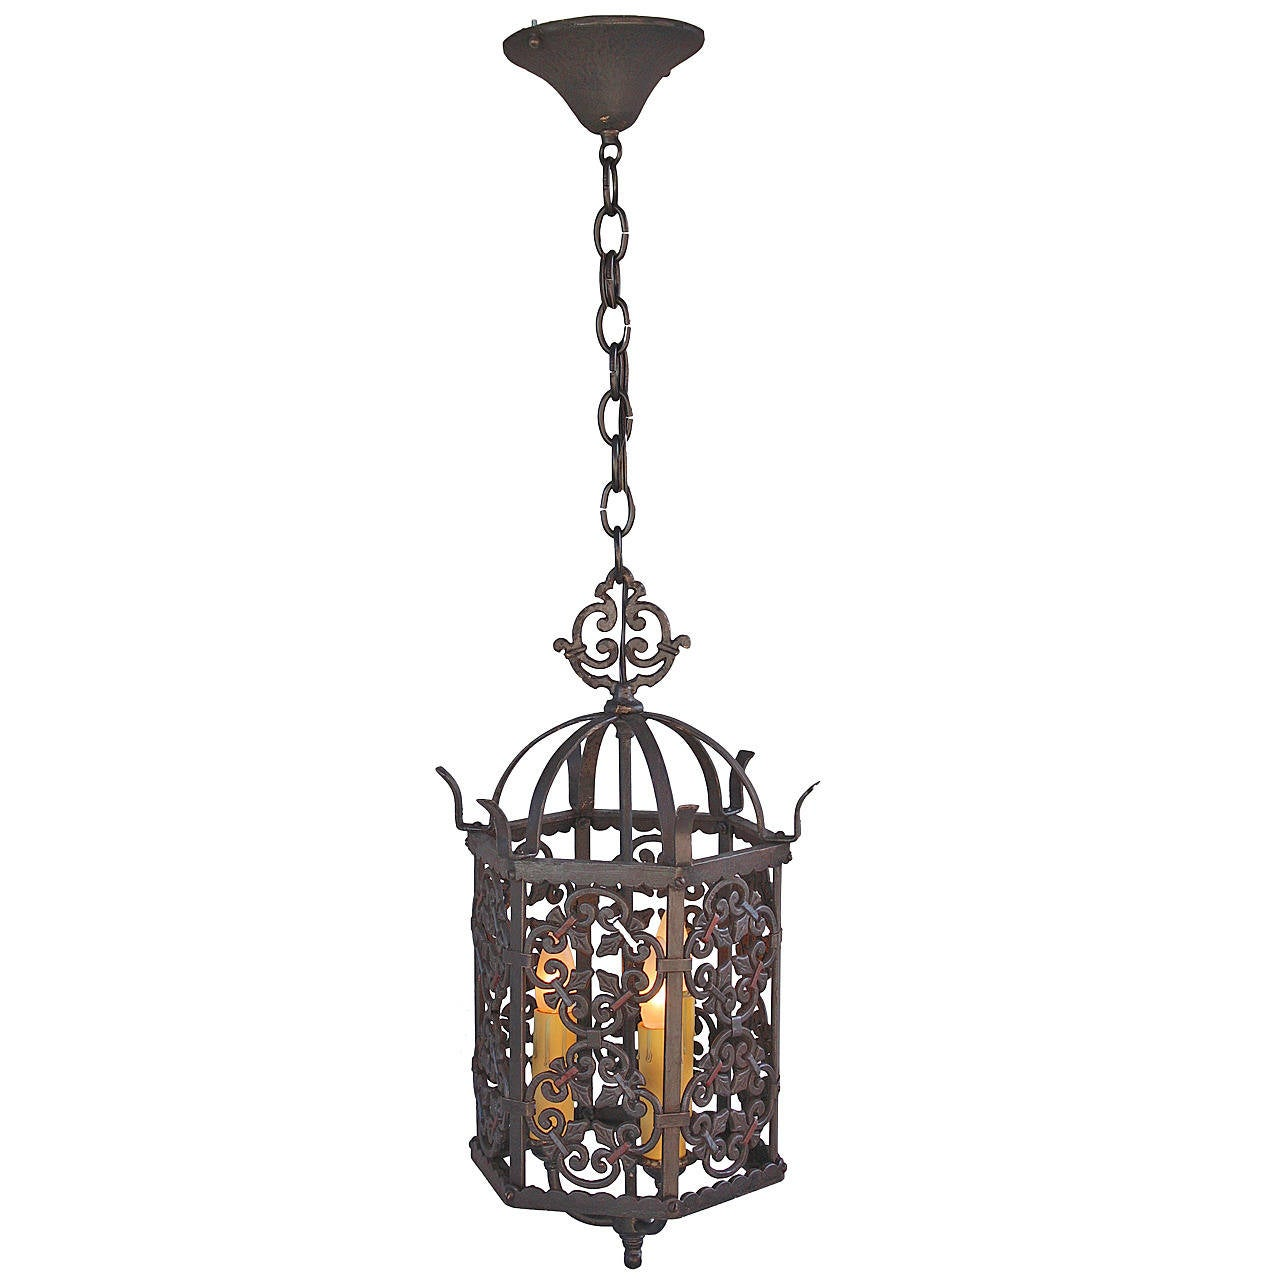 Handsome three light spanish revival pendant at 1stdibs for Spanish revival lighting fixtures